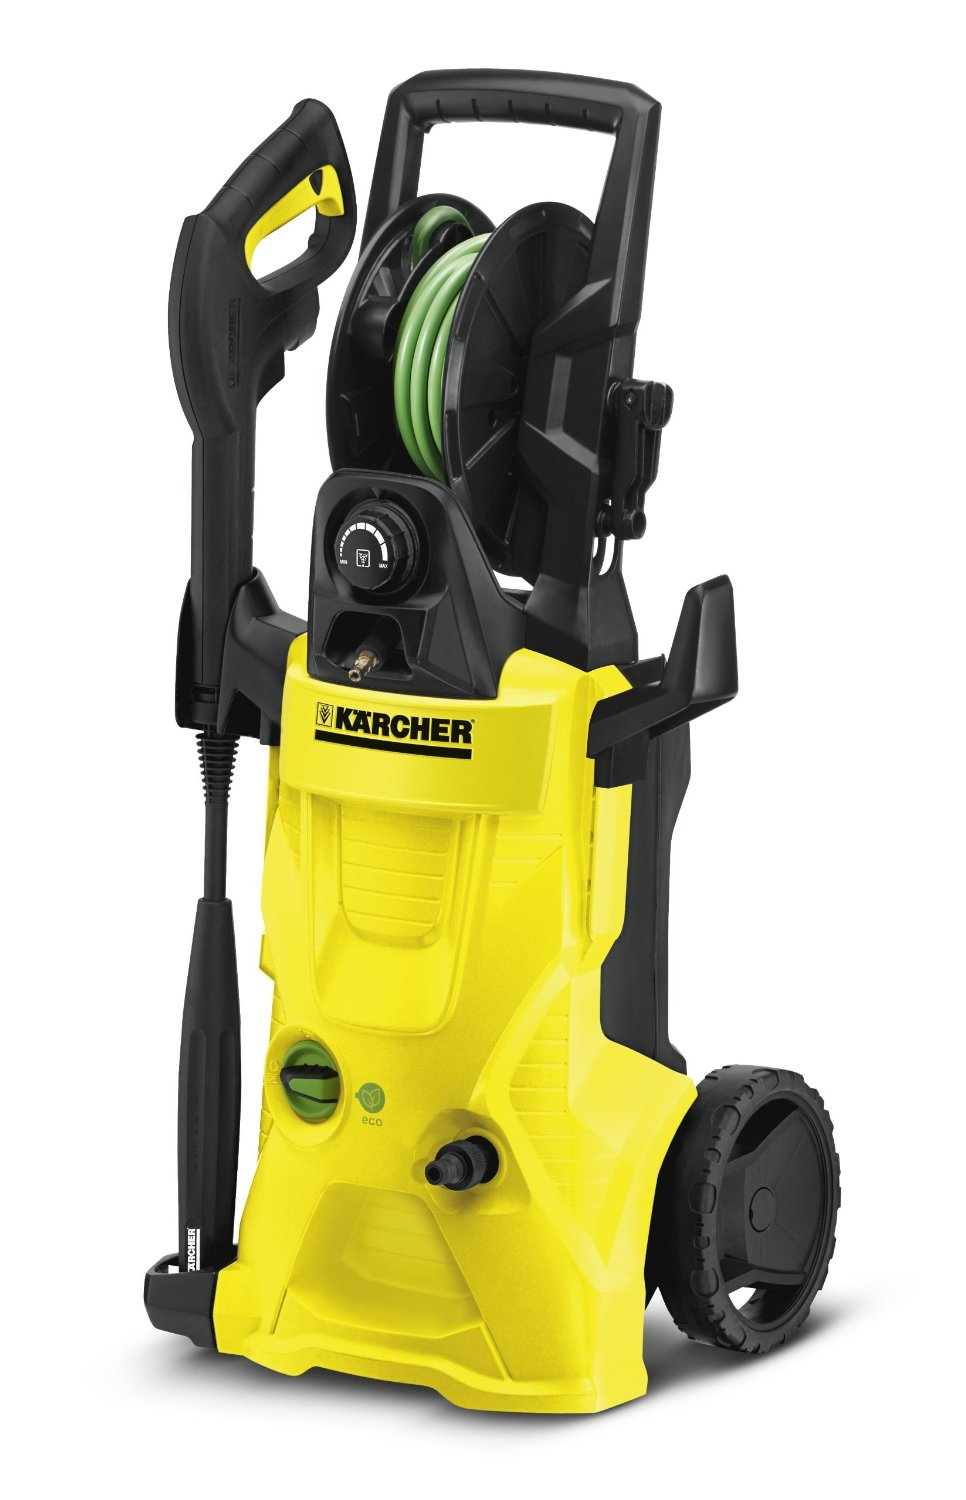 karcher k4 review premium eco home pressure washer. Black Bedroom Furniture Sets. Home Design Ideas